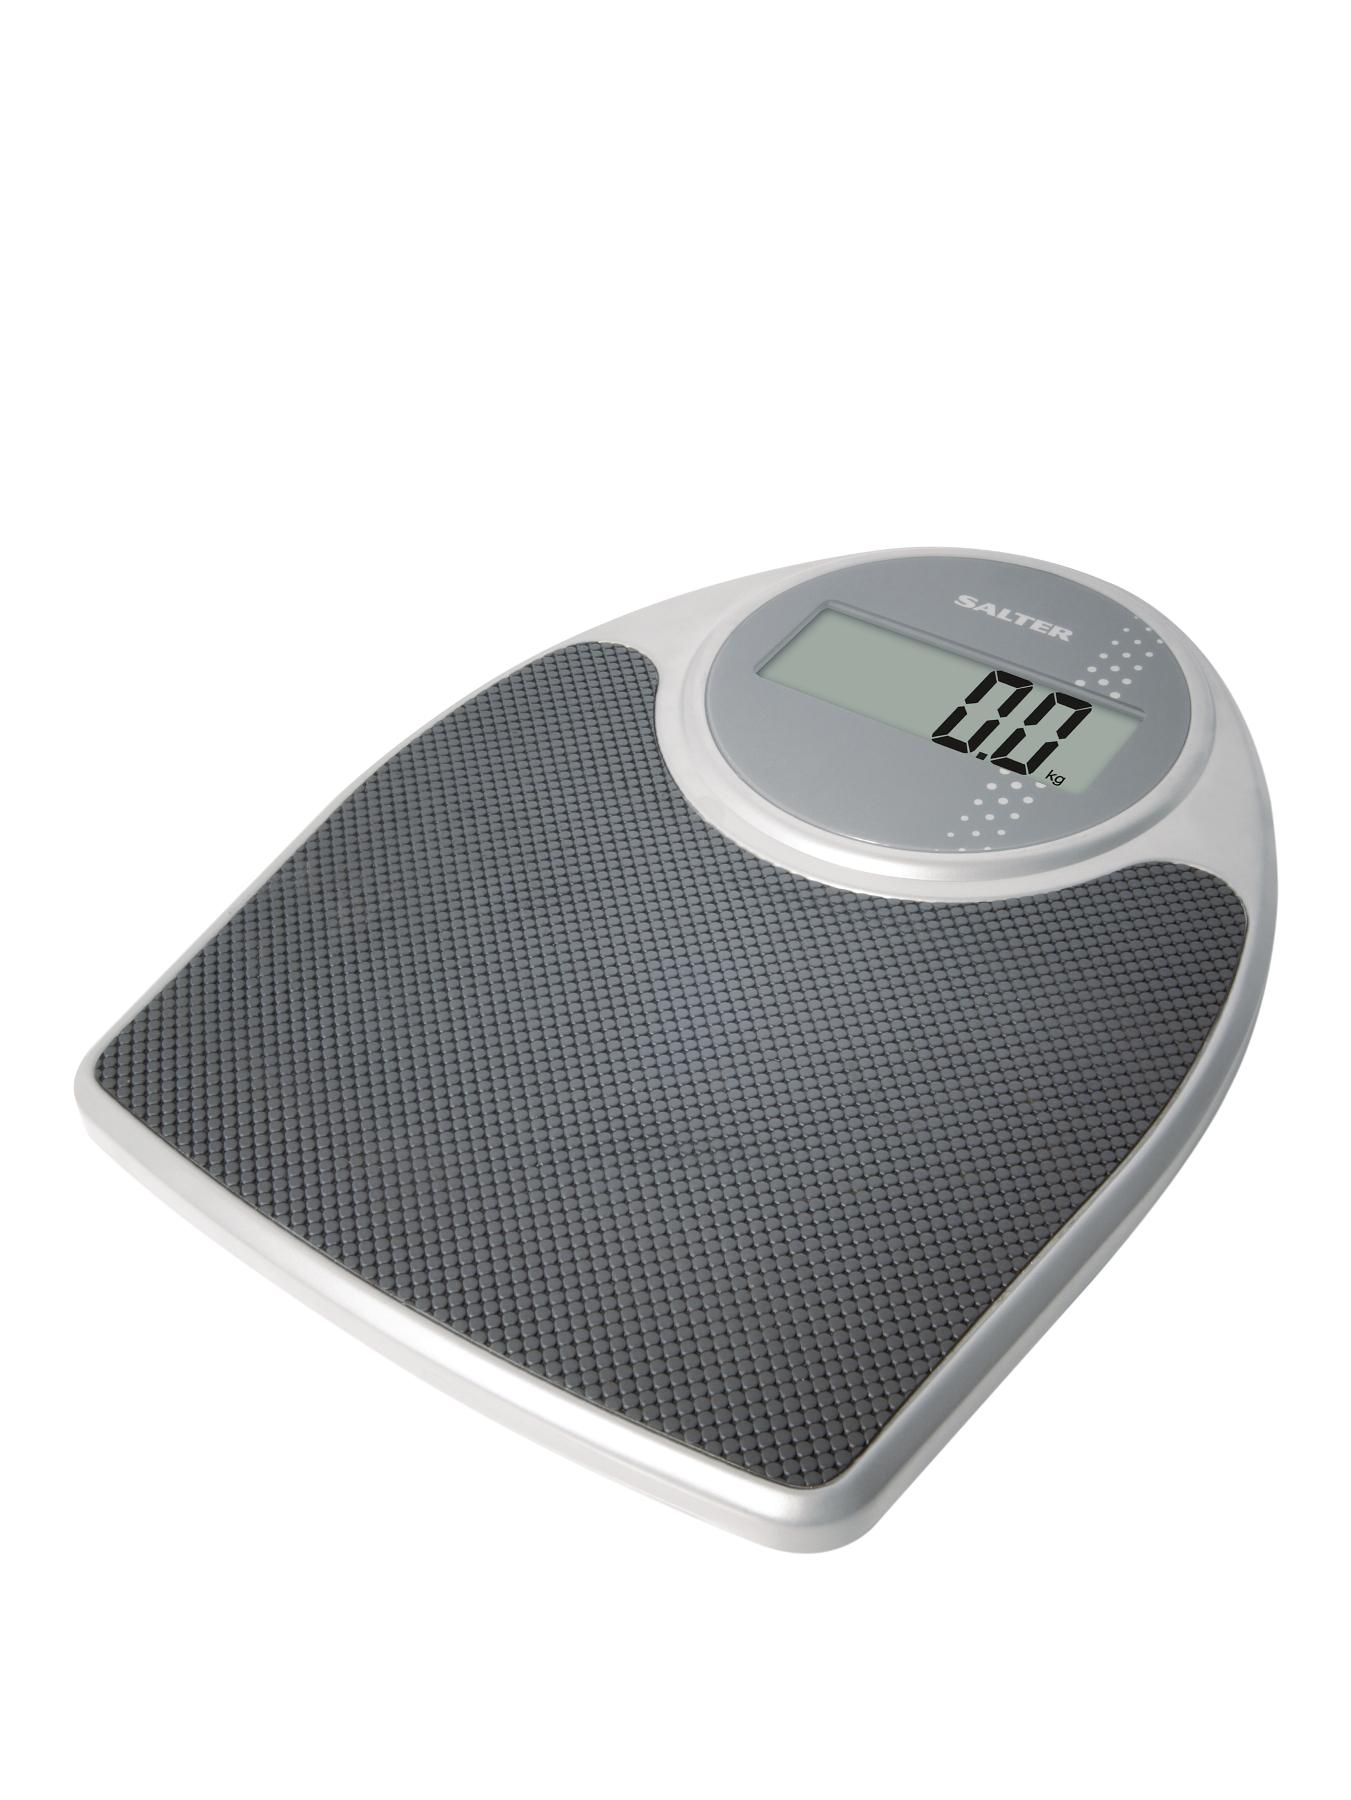 Salter Digital Doctors Style Electronic Scale